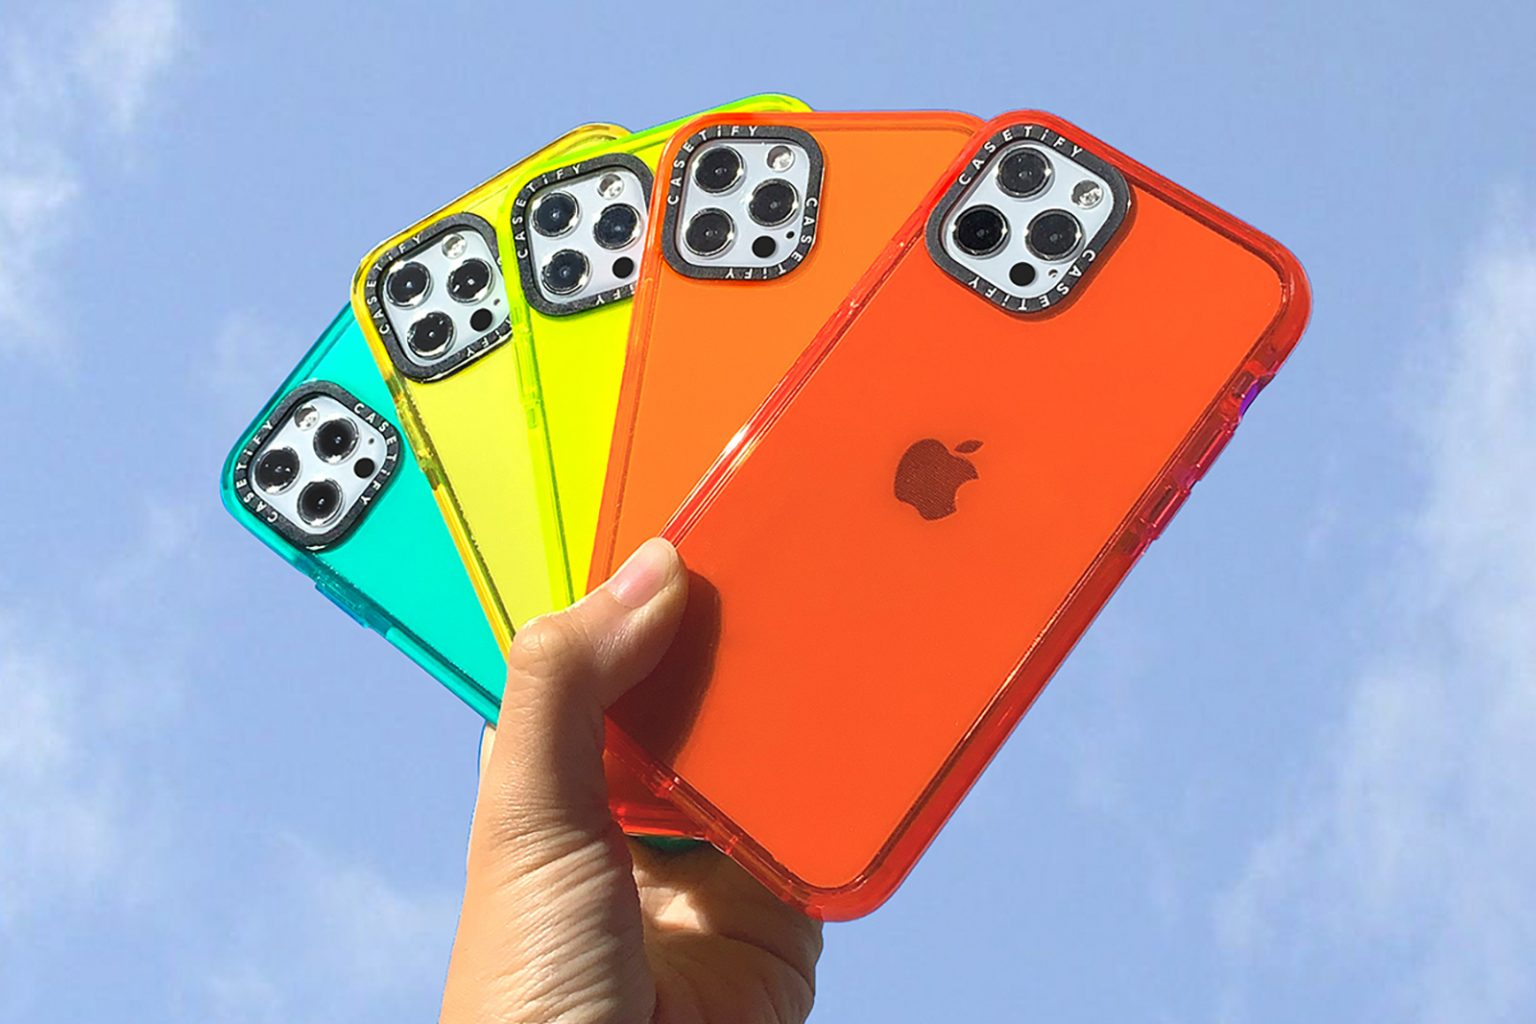 Colorful iPhone cases: The Casetify Color Pop collection comes in vibrant colors.